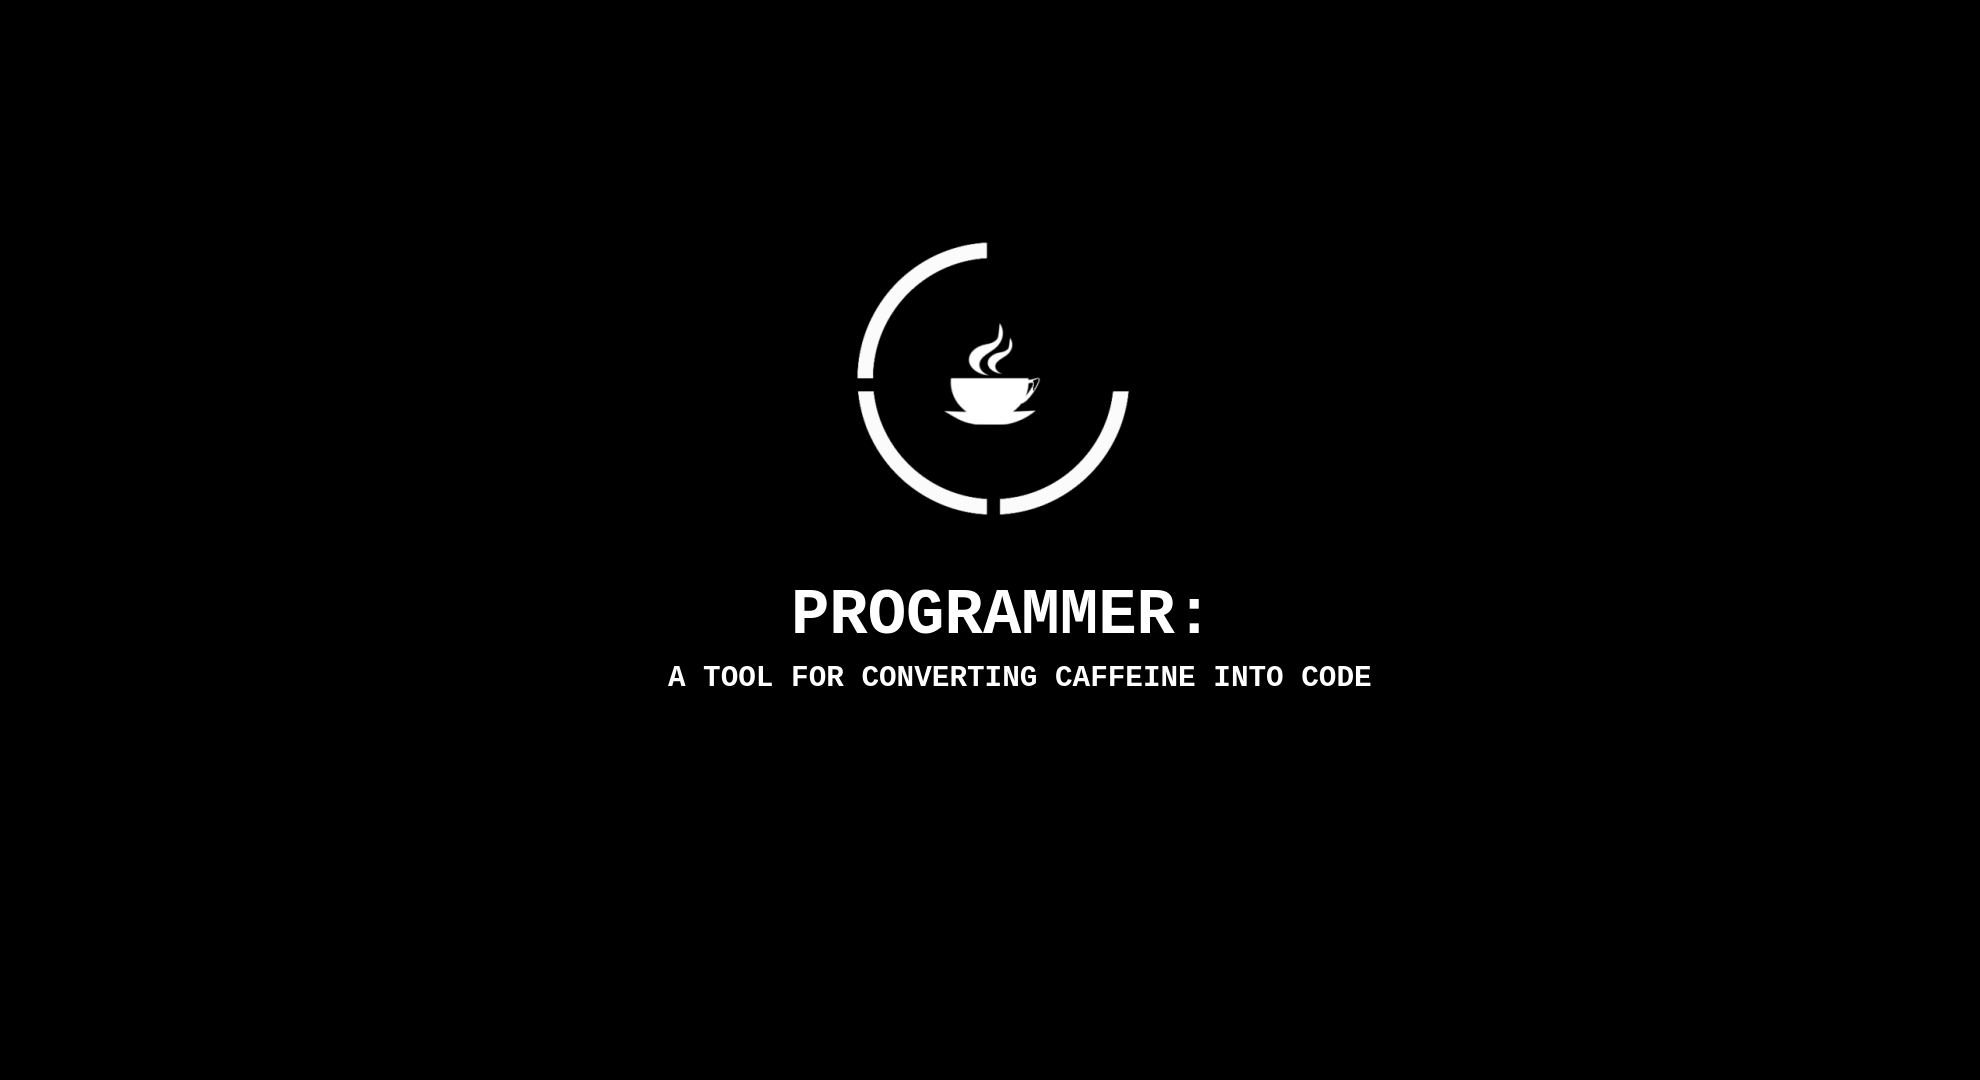 programmer Computer Wallpapers Desktop Backgrounds 1980x1080 ID 1980x1080